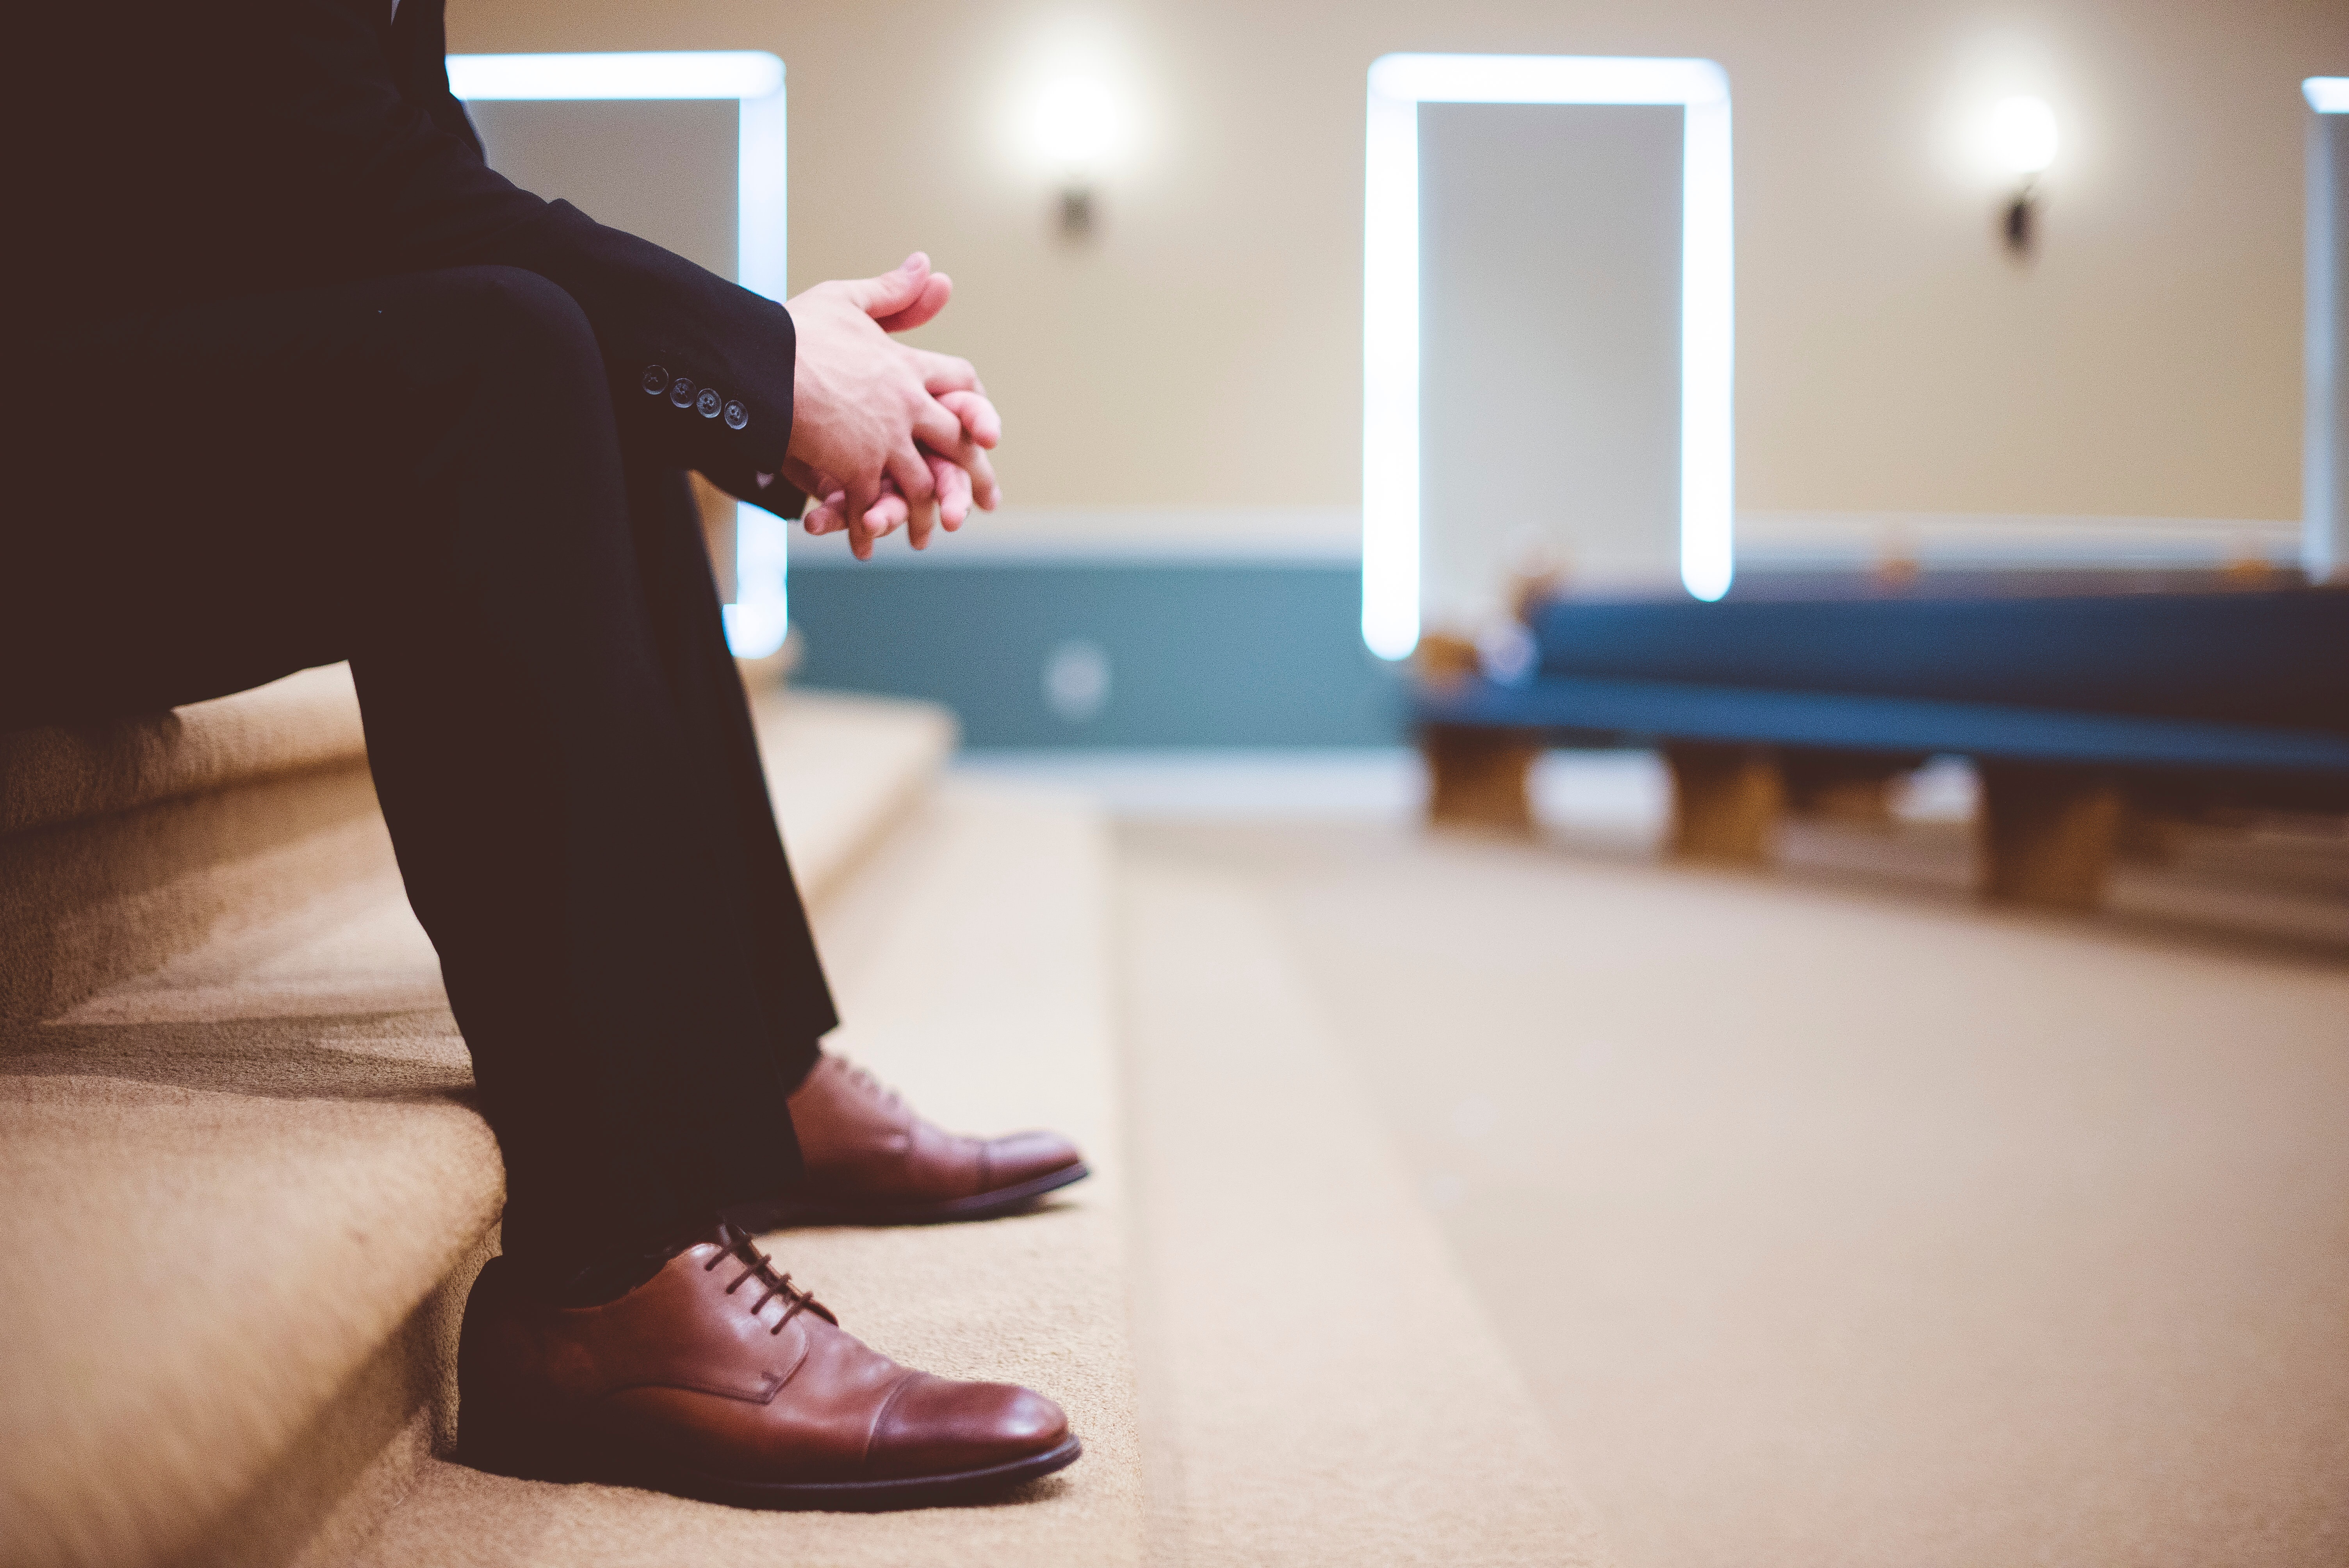 man in suit and dress shoes sitting on alter steps of a church. empty church pews in the background